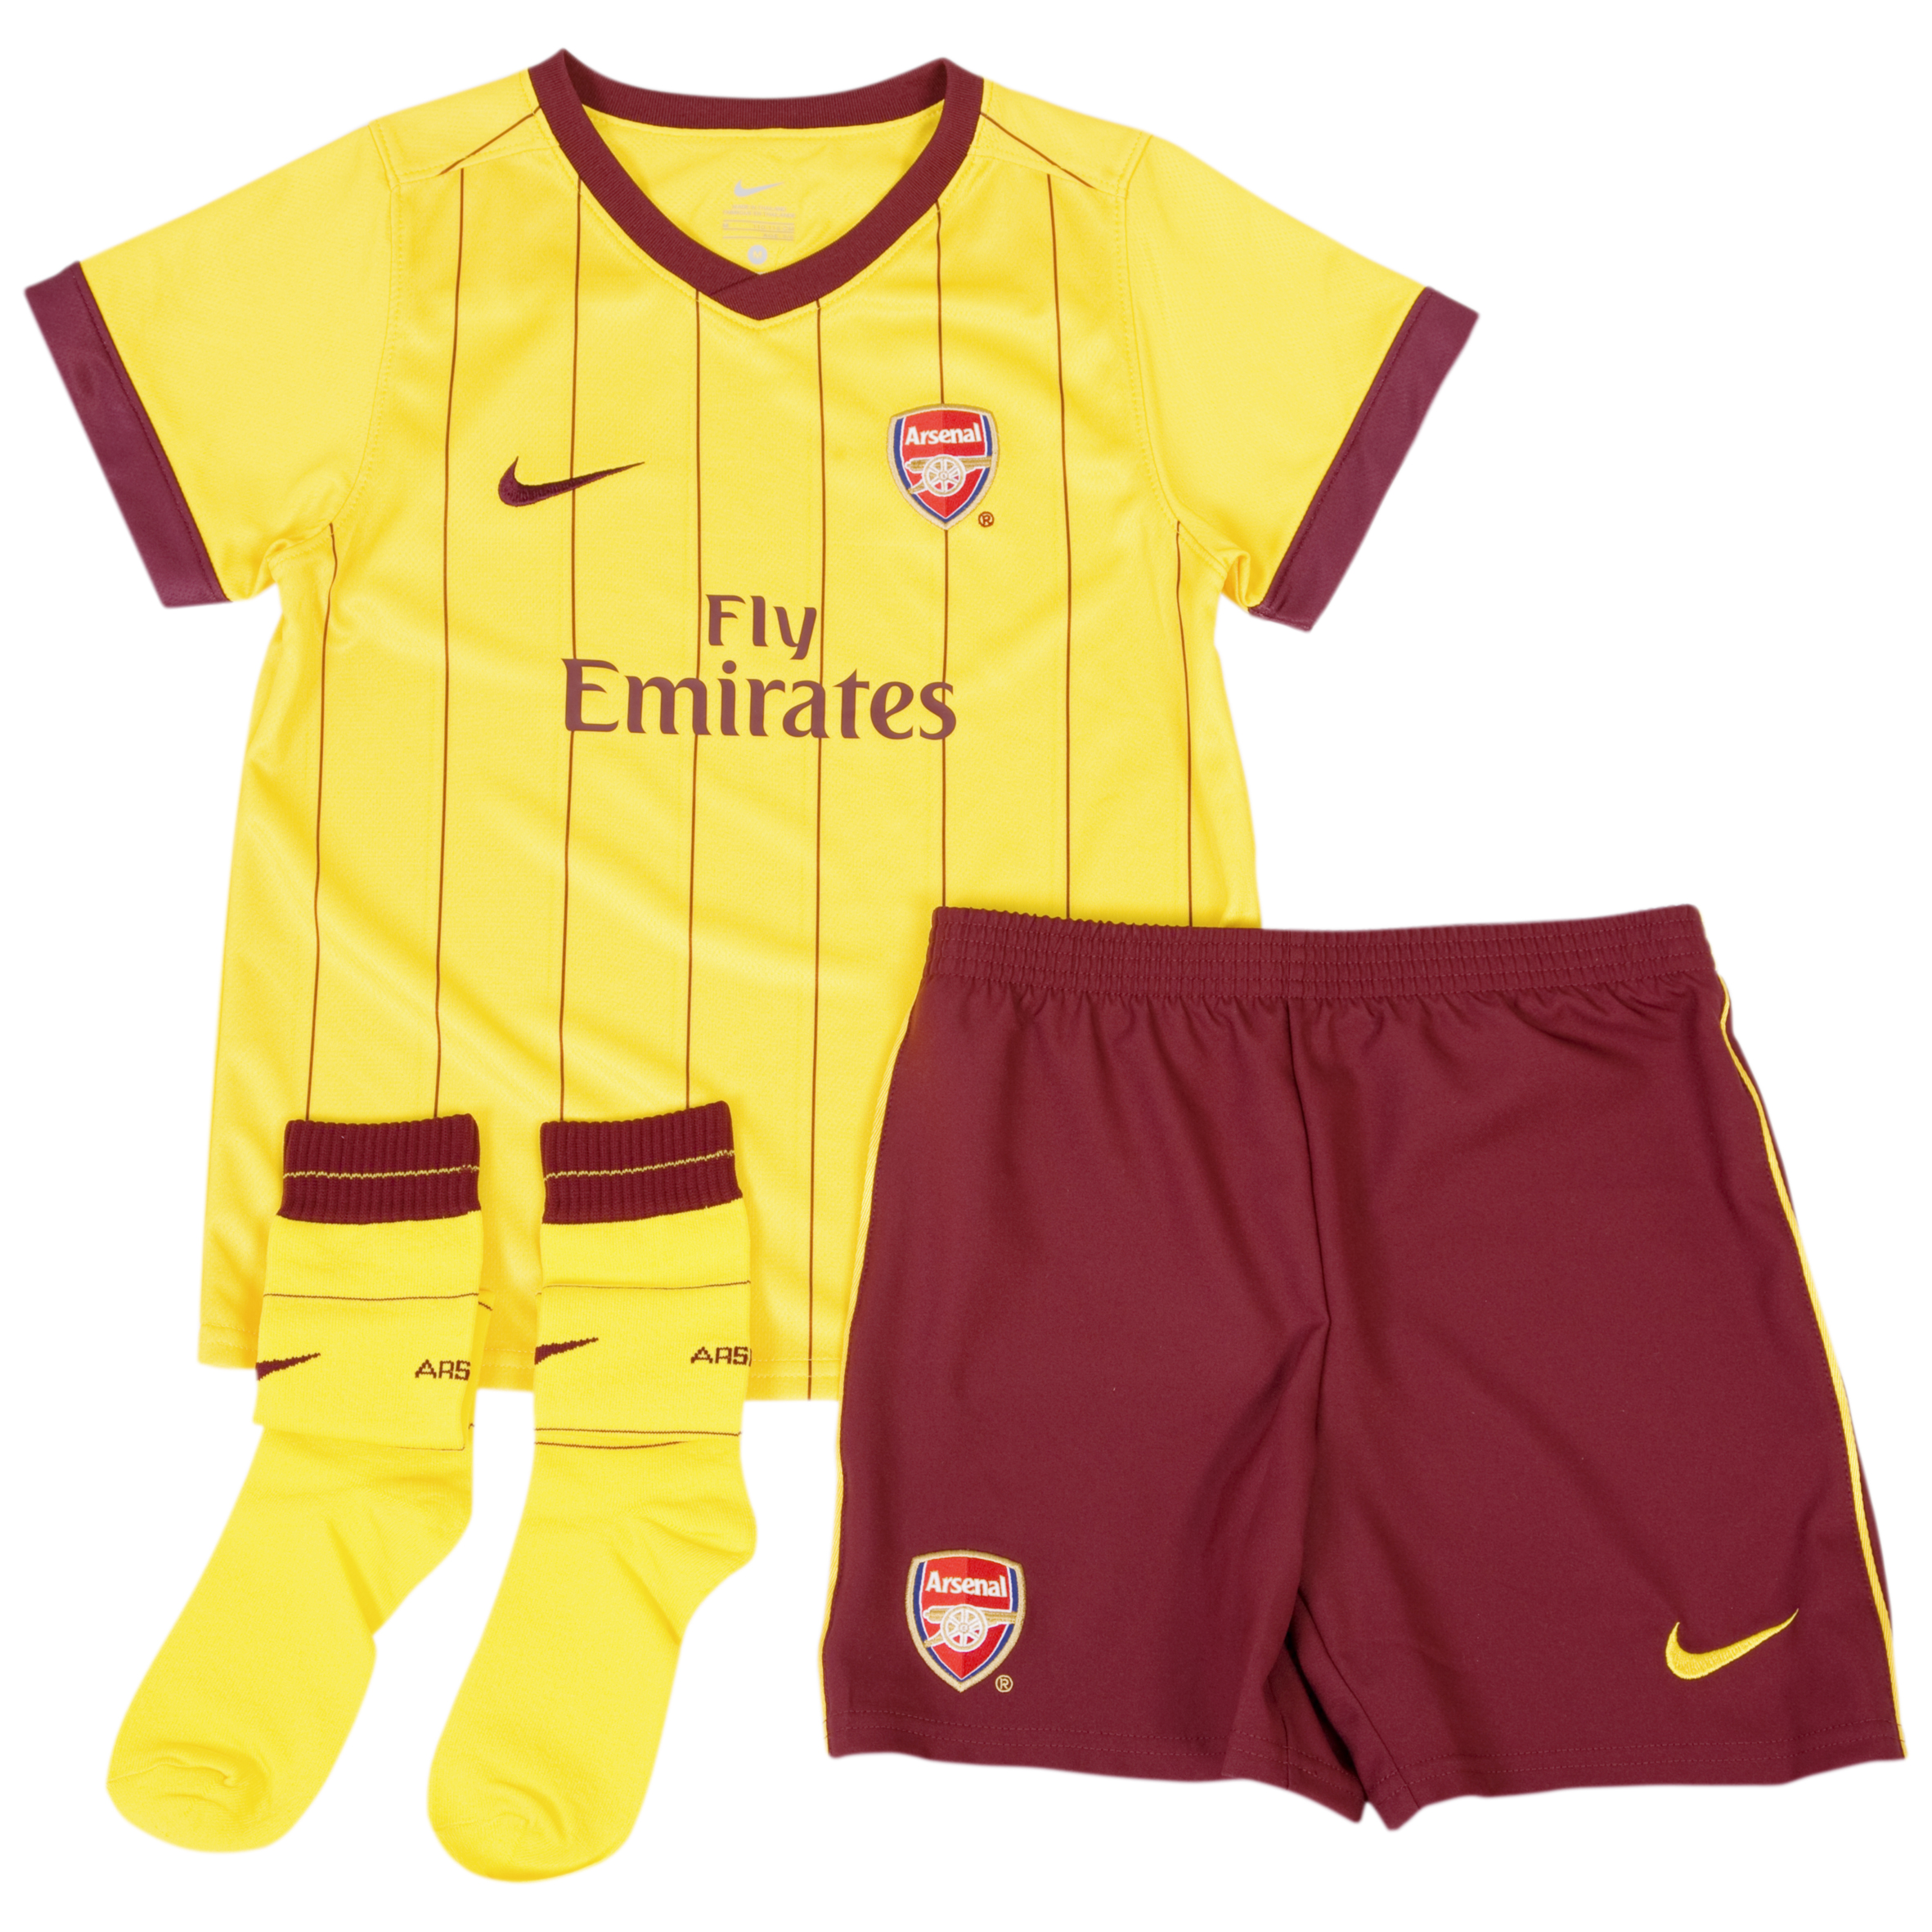 Arsenal Away Kit 2010/11 - Little Kids